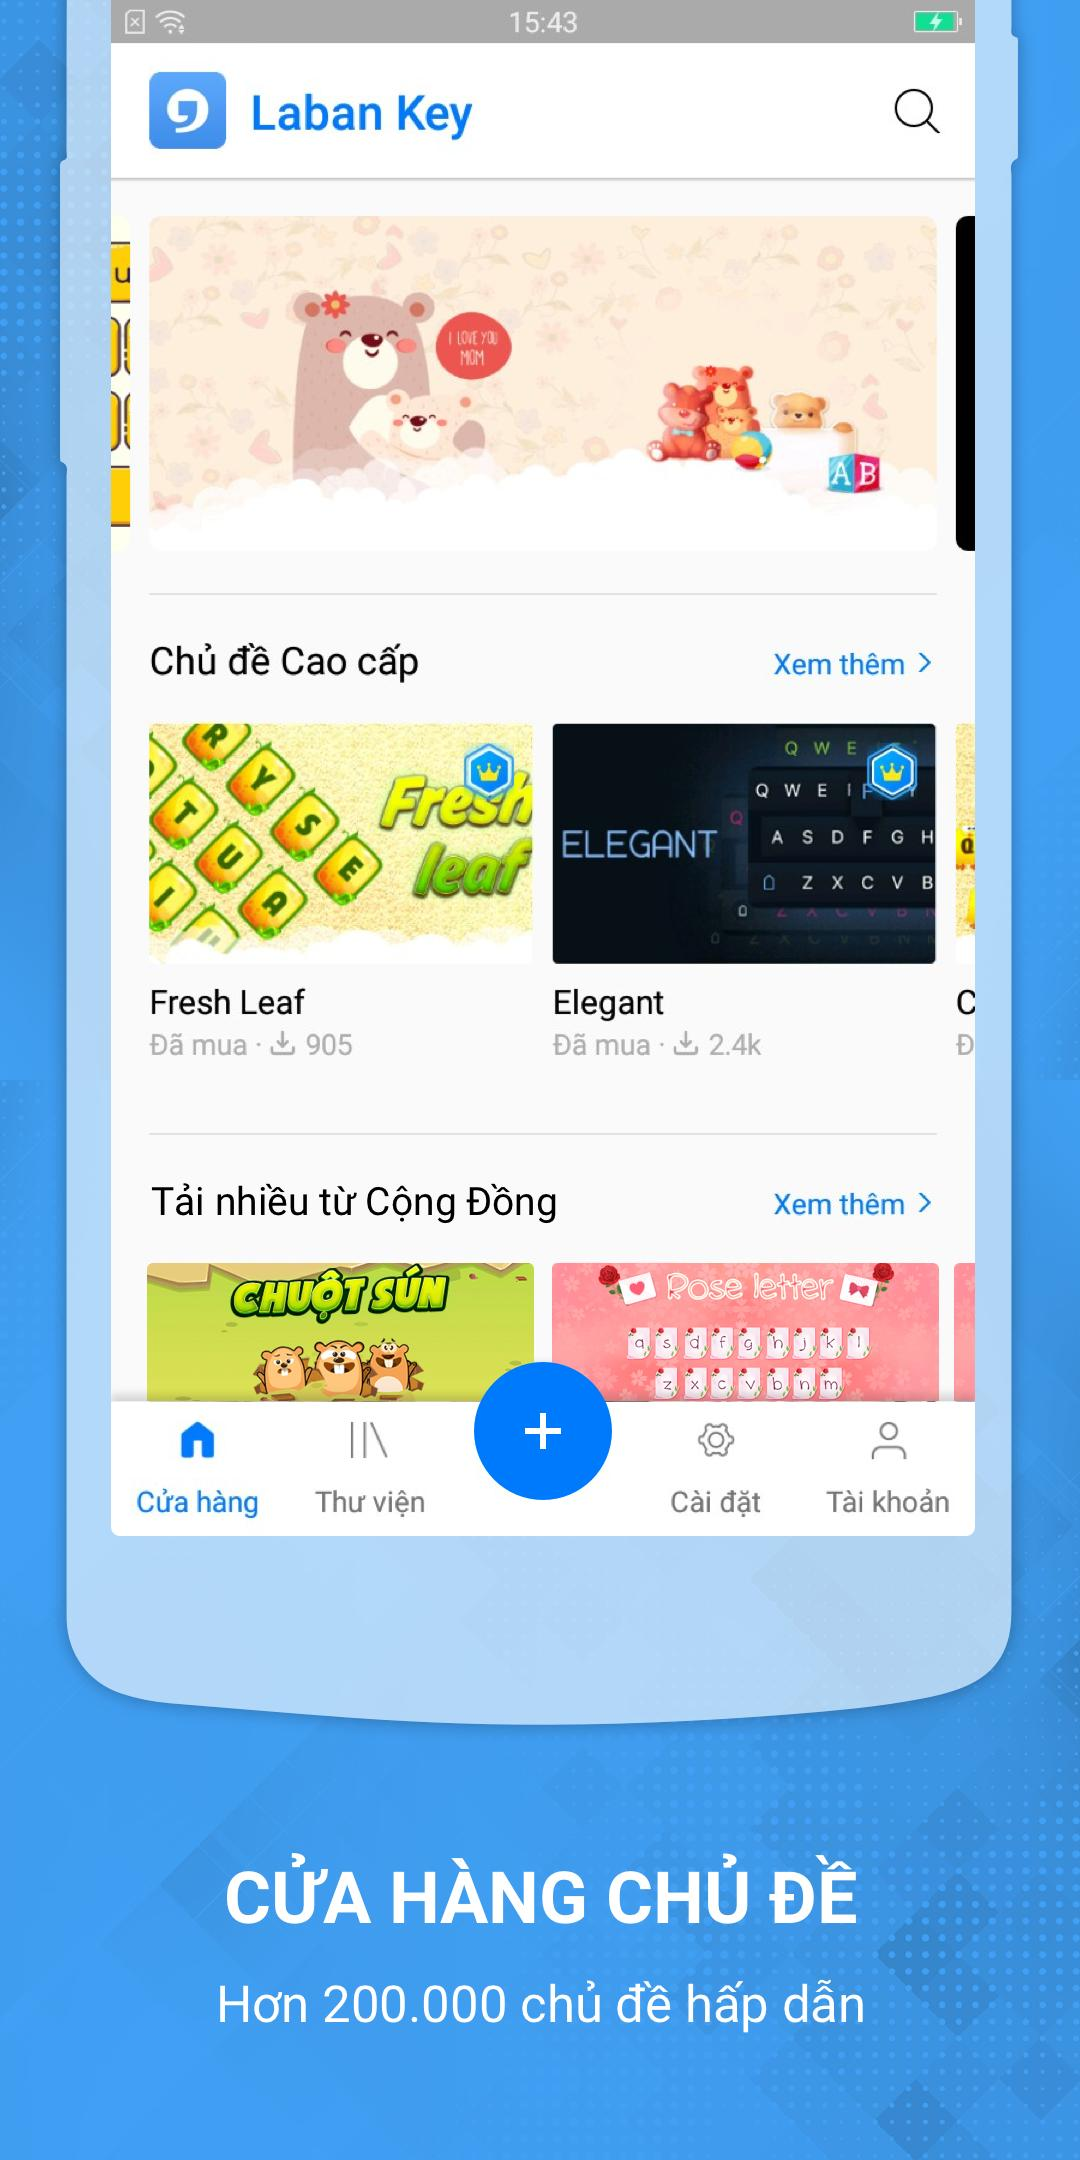 Laban Key for Android - APK Download